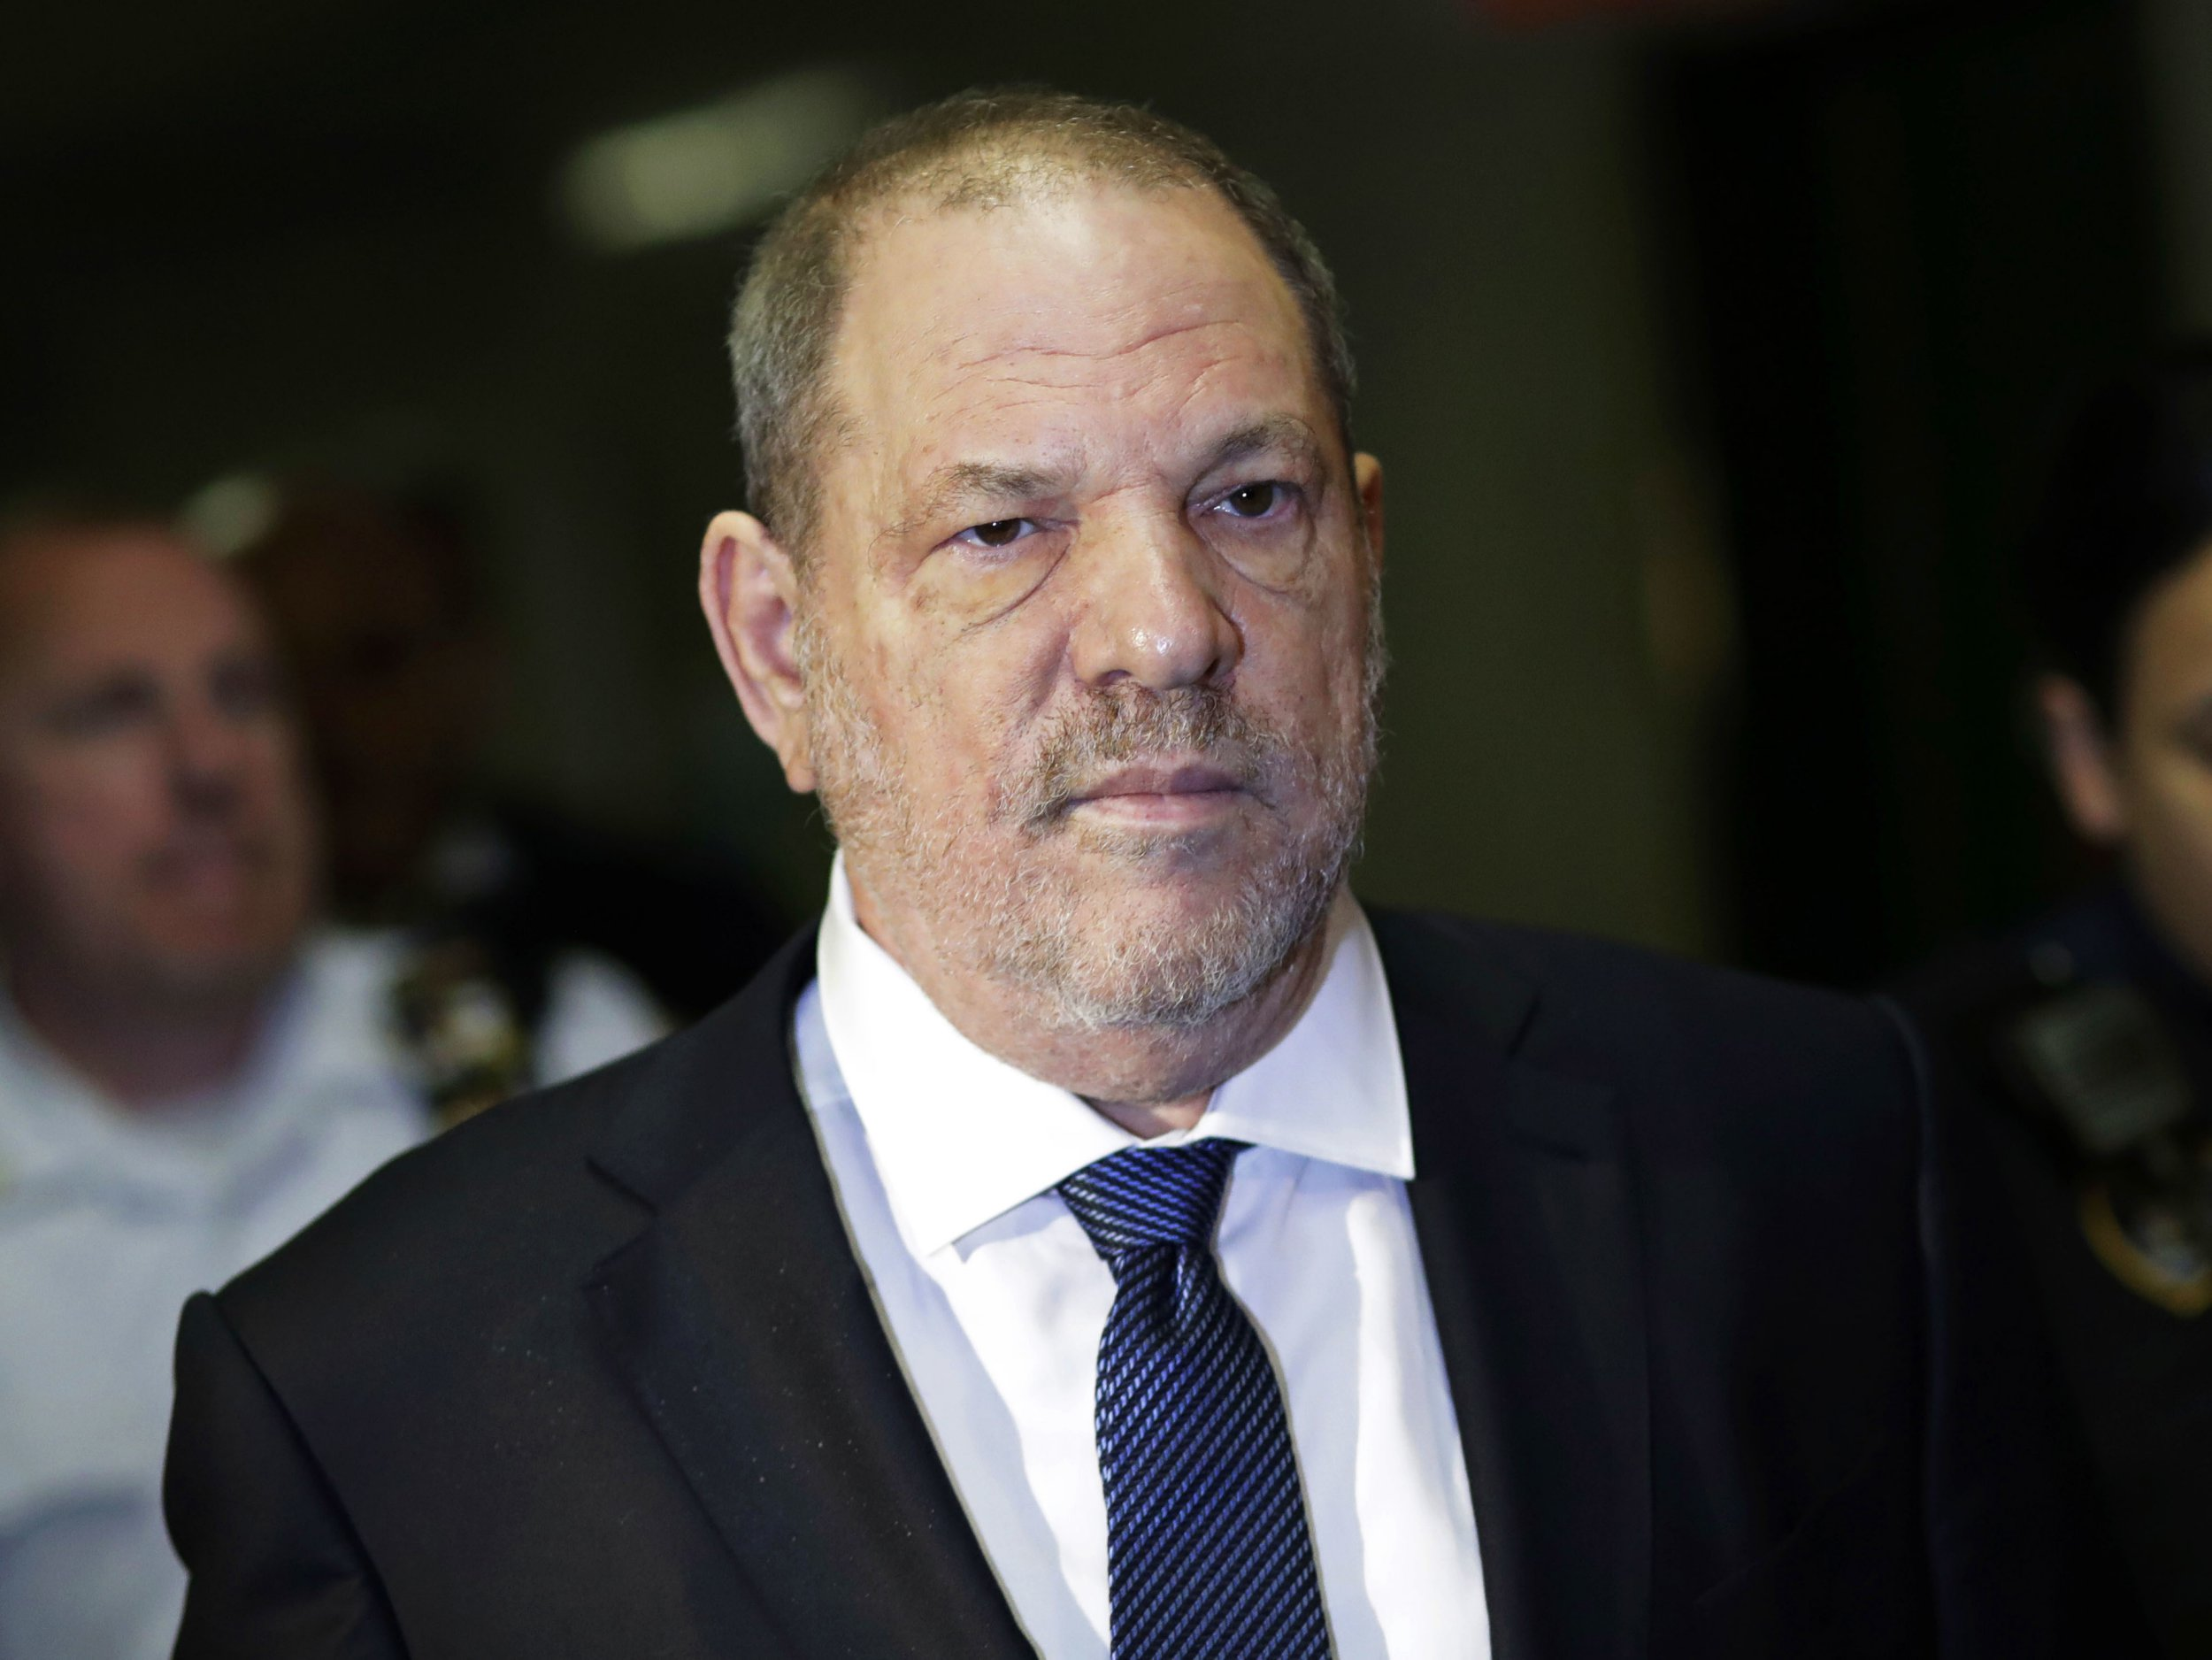 Harvey Weinstein documentary to premiere at Sundance Film Festival where multiple attacks allegedly took place